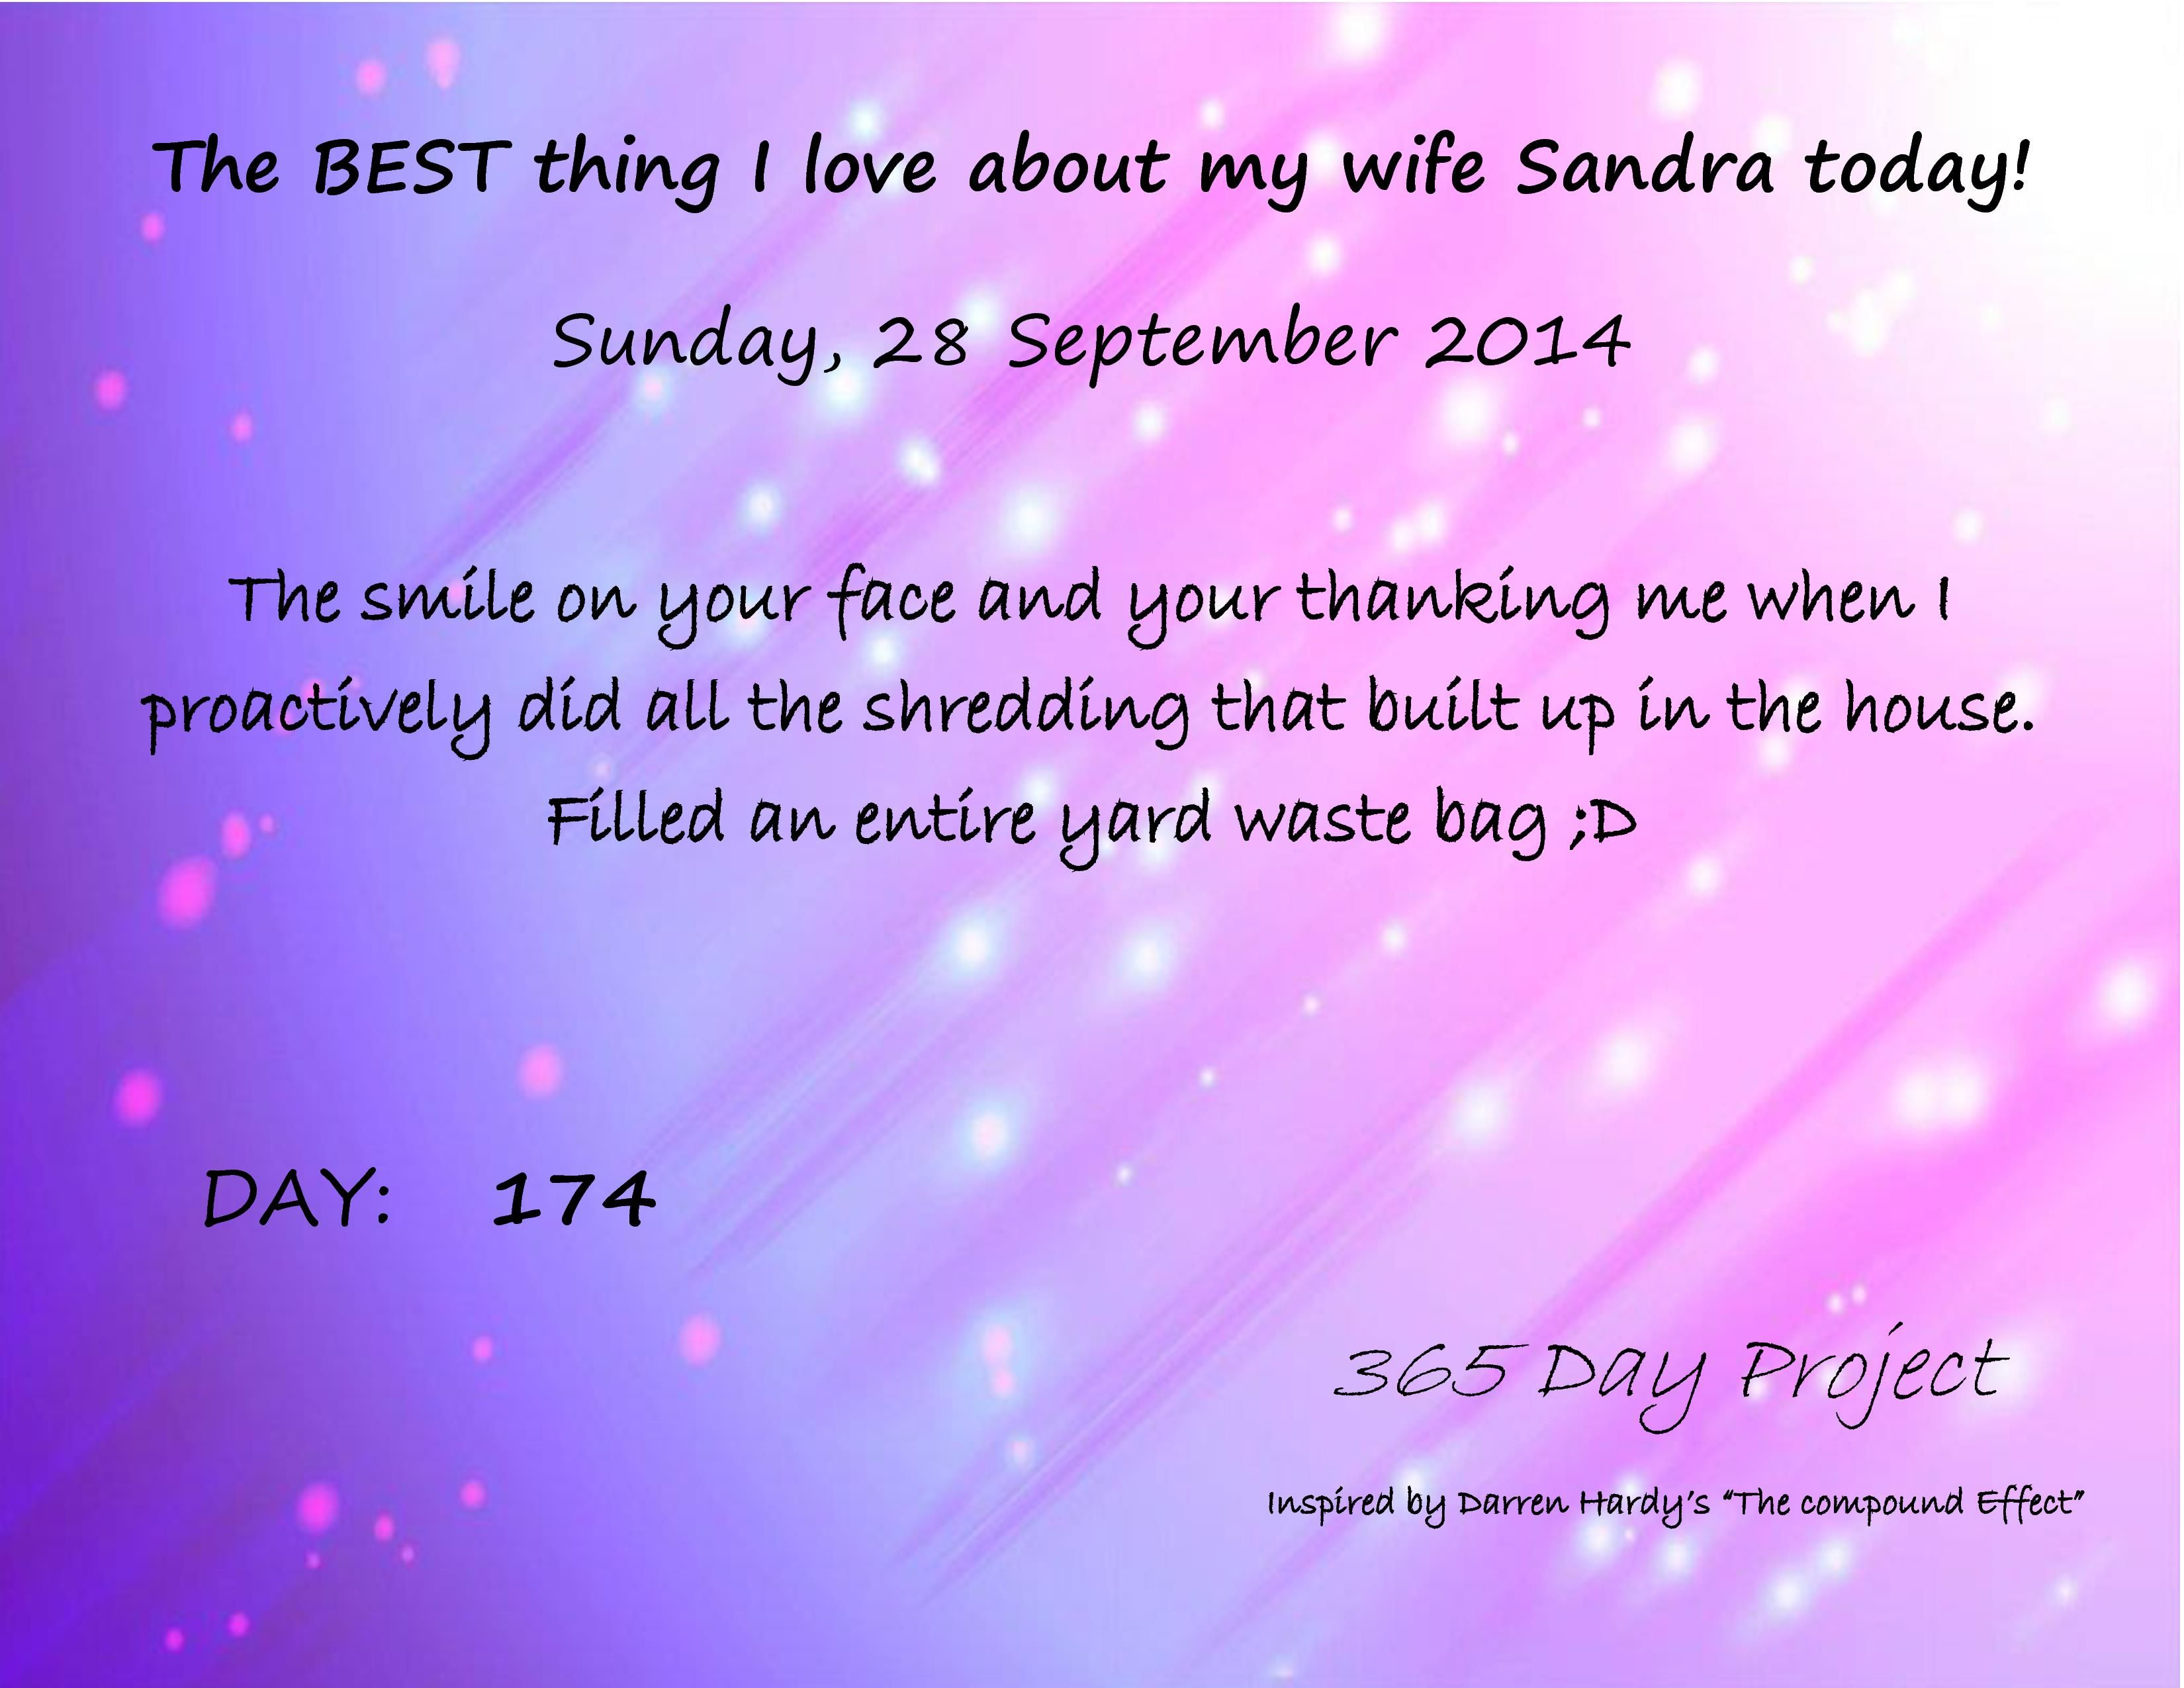 sept 28 My love, Thoughts, Darren hardy